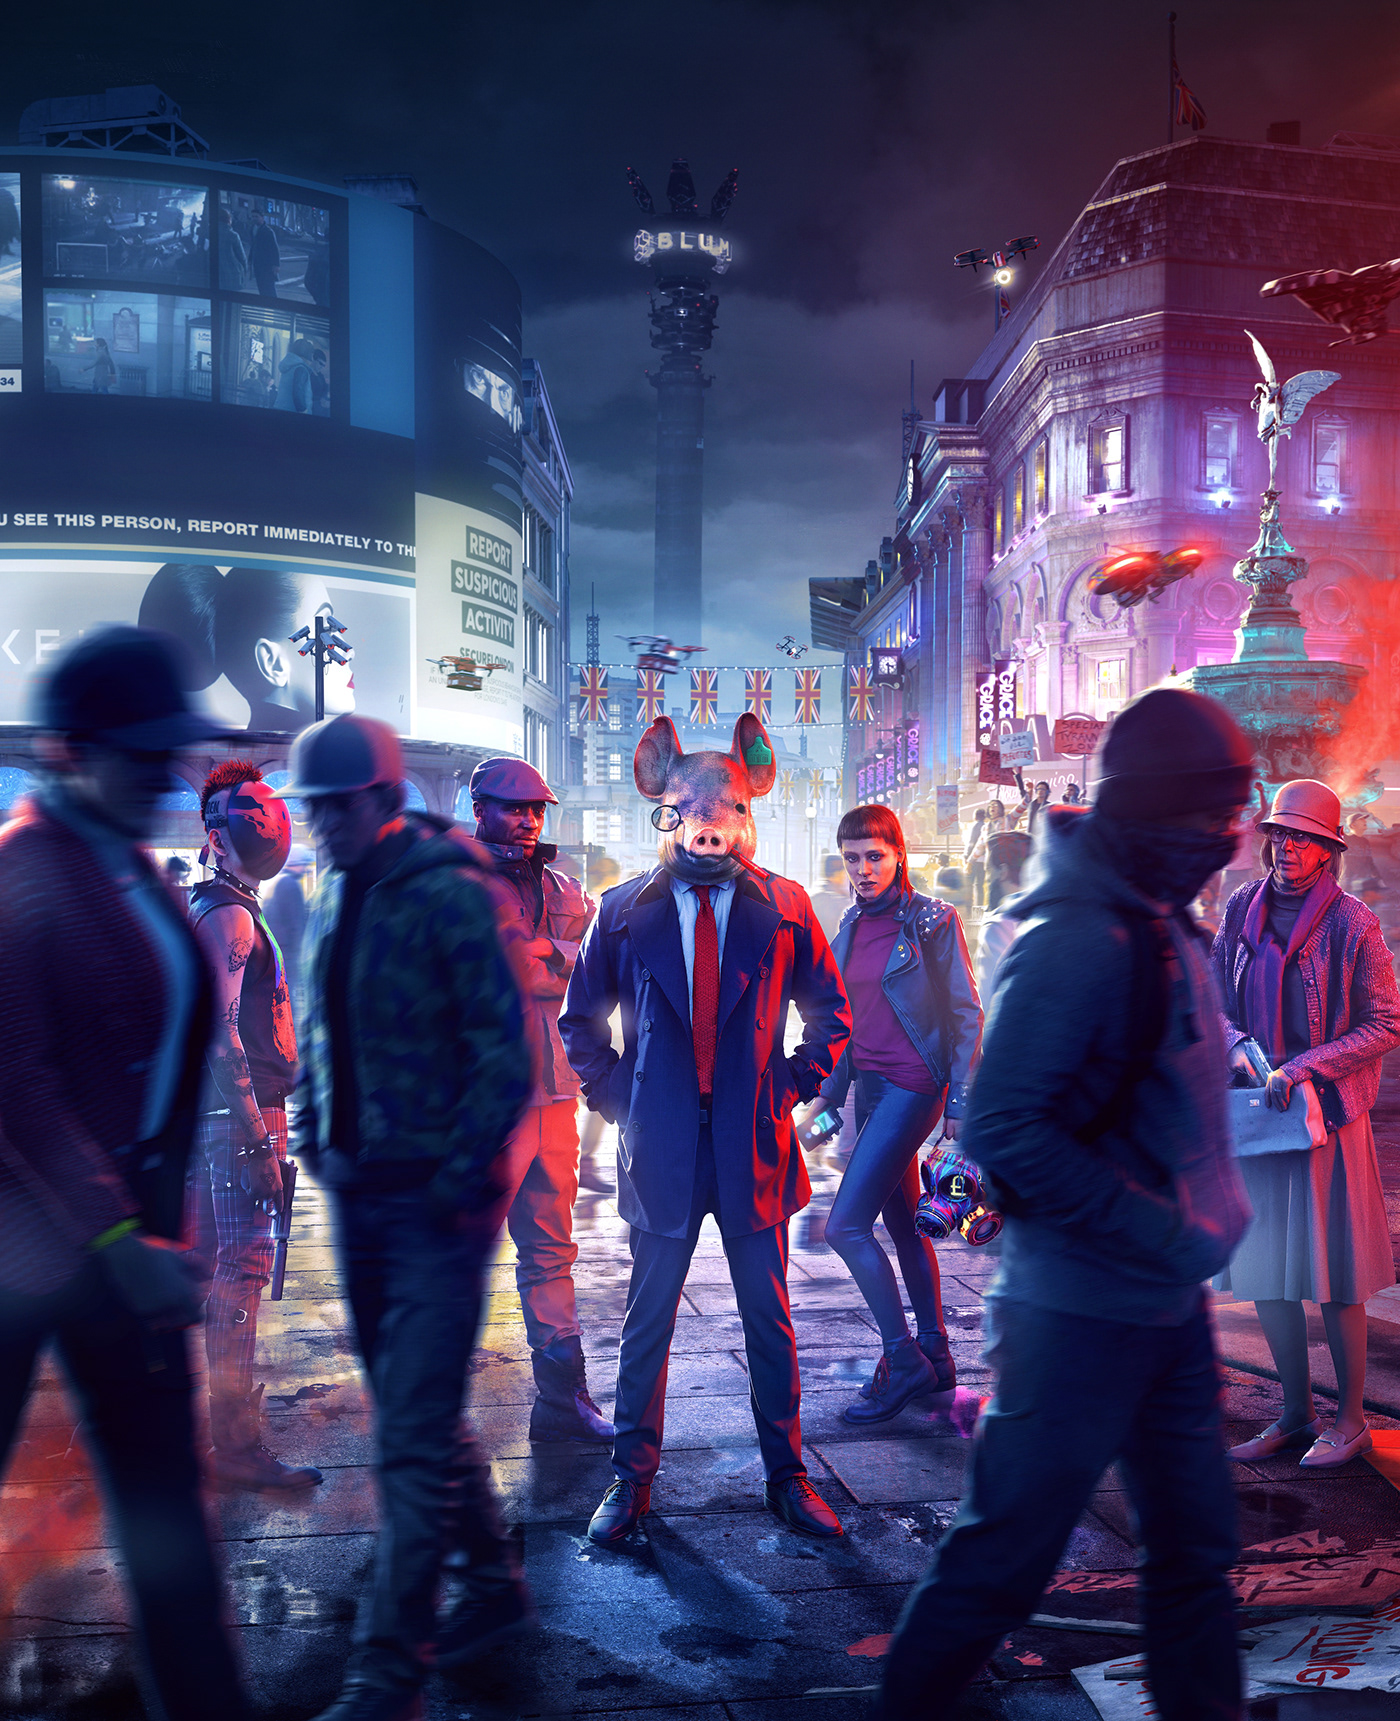 Watch Dogs Legion watch dogs video game London Dystopia Orwell Packaging communication United Kingdom Umbrella